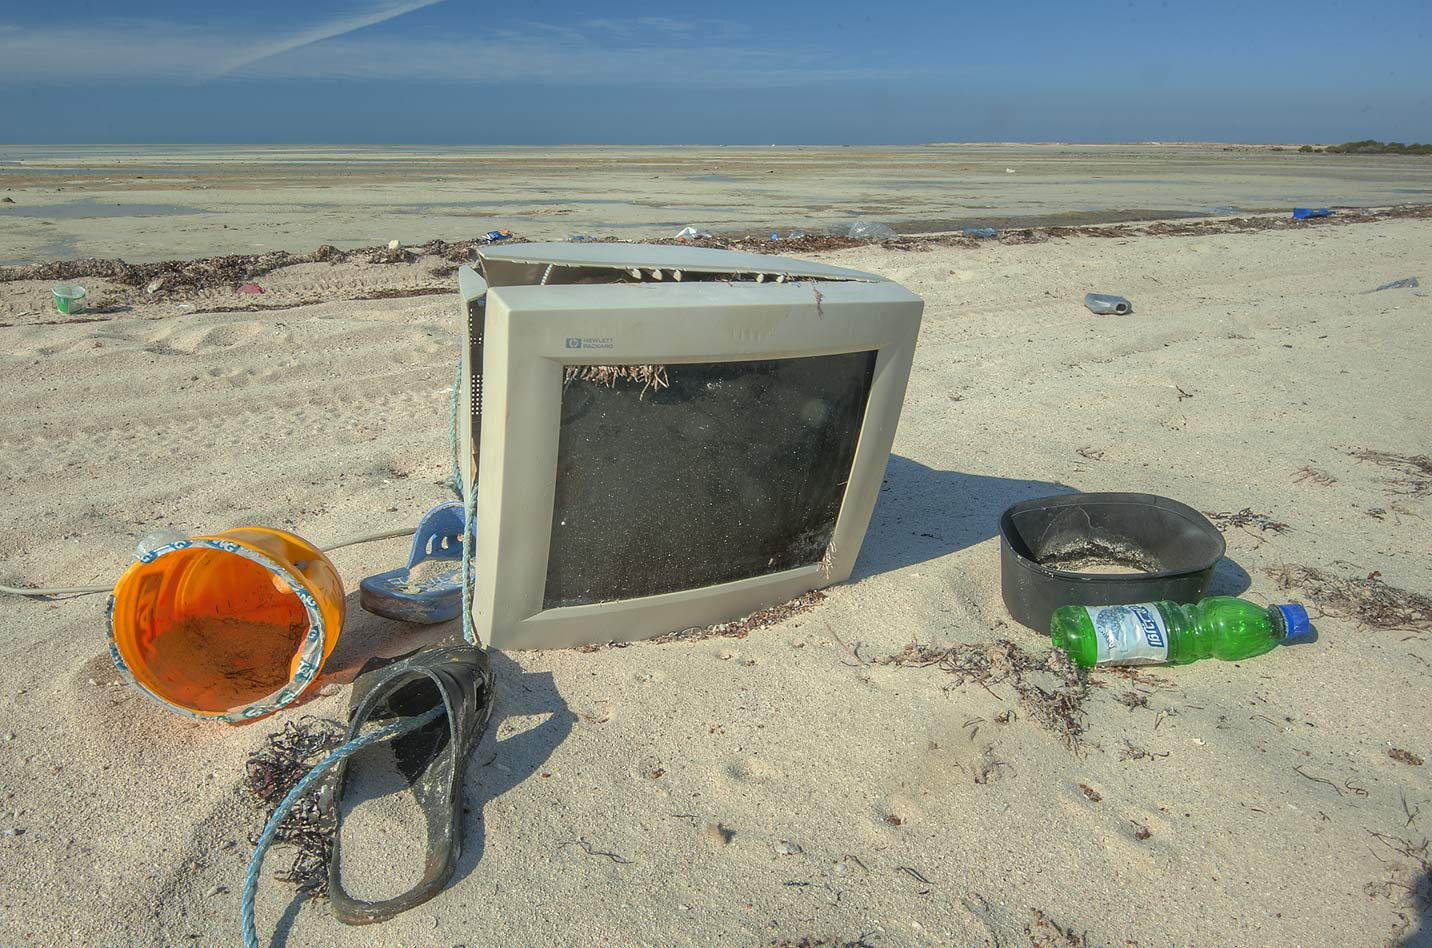 Hewlett Packard computer monitor among trash on a...Jumayl) west of Ruwais. Northern Qatar